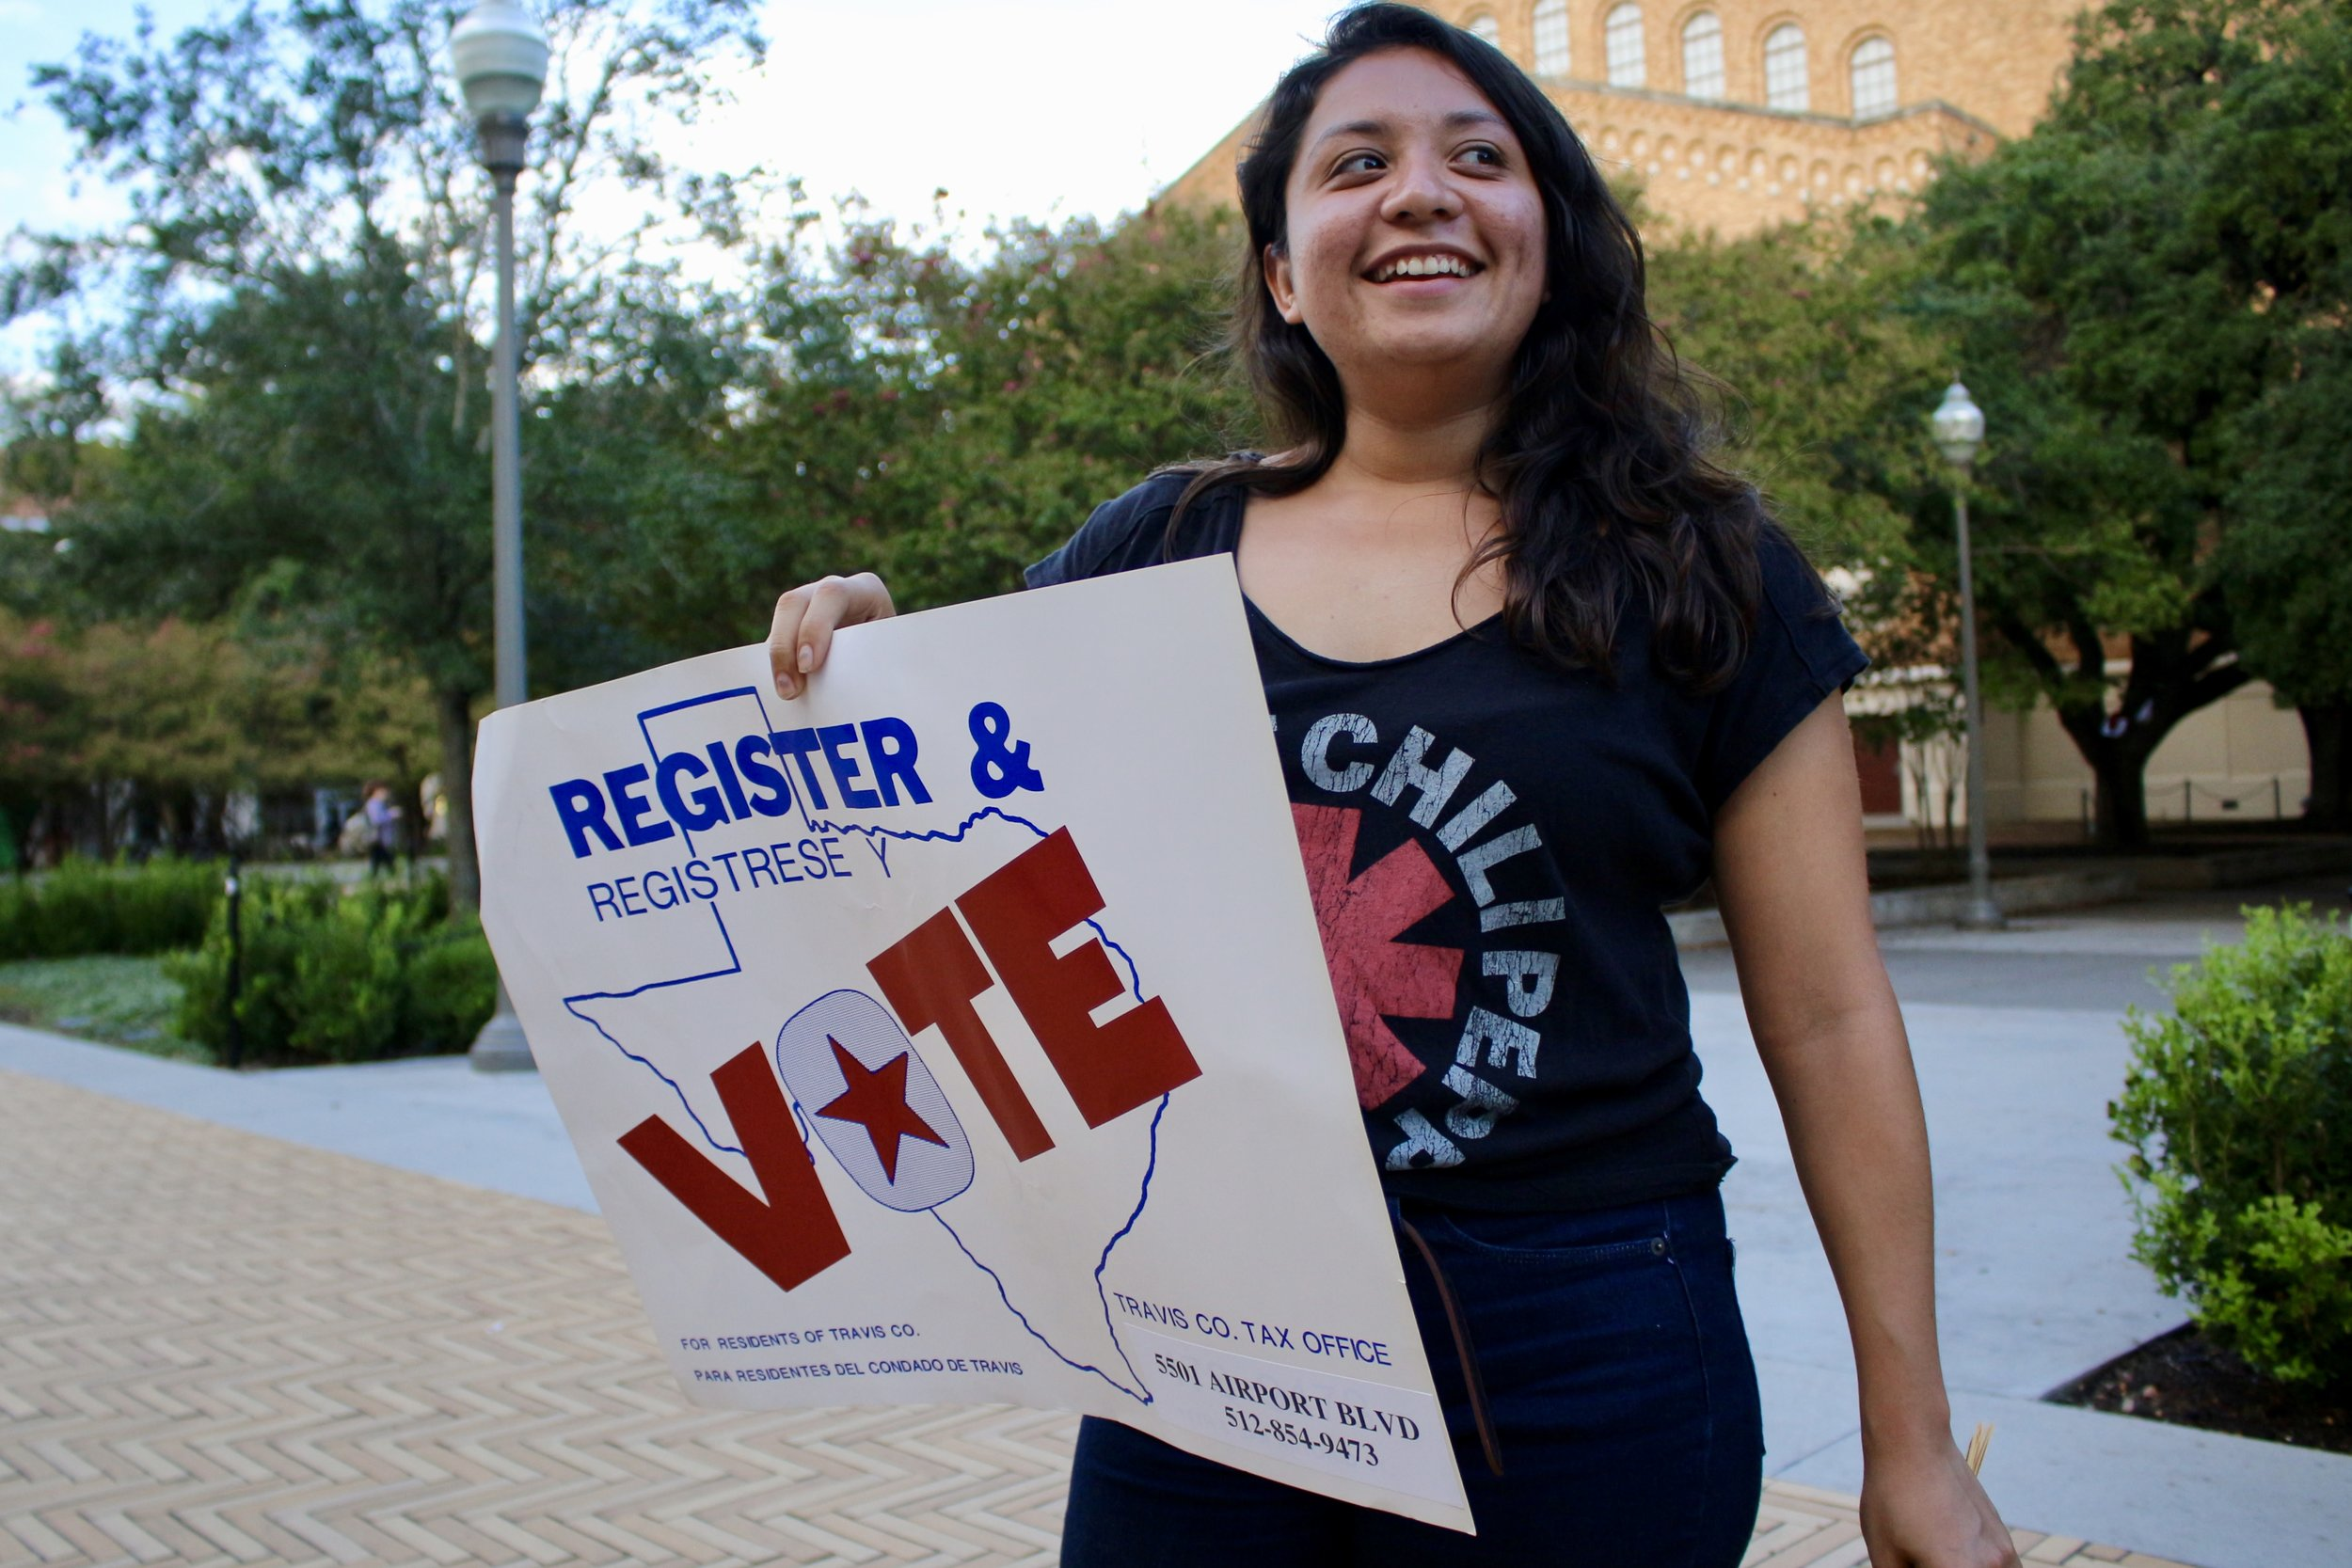 Jolt Texas registered over 5,000 voters across Texas.